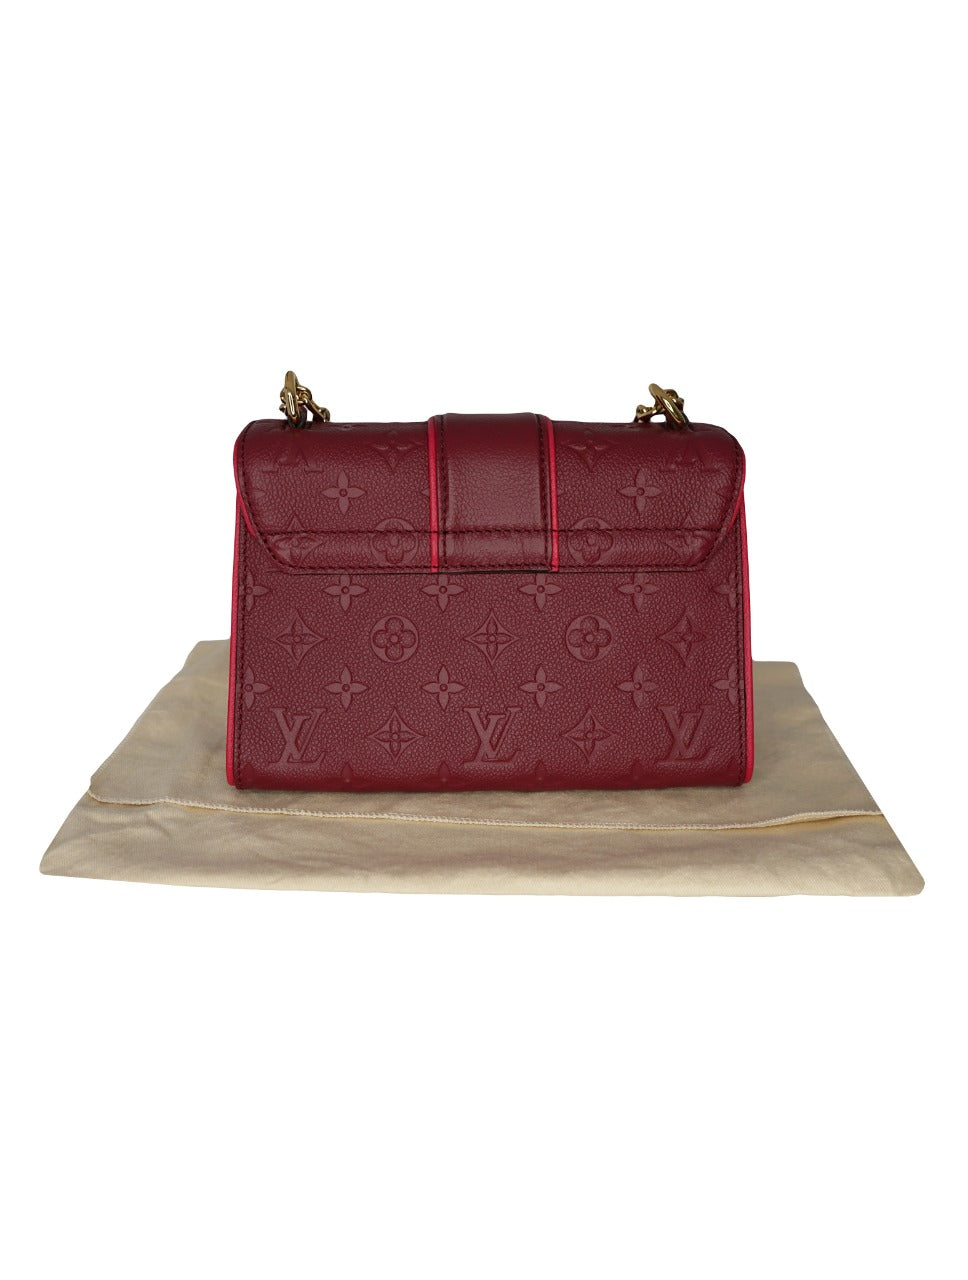 MONOGRAM EMPREINTE LEATHER SAINT SULPICE